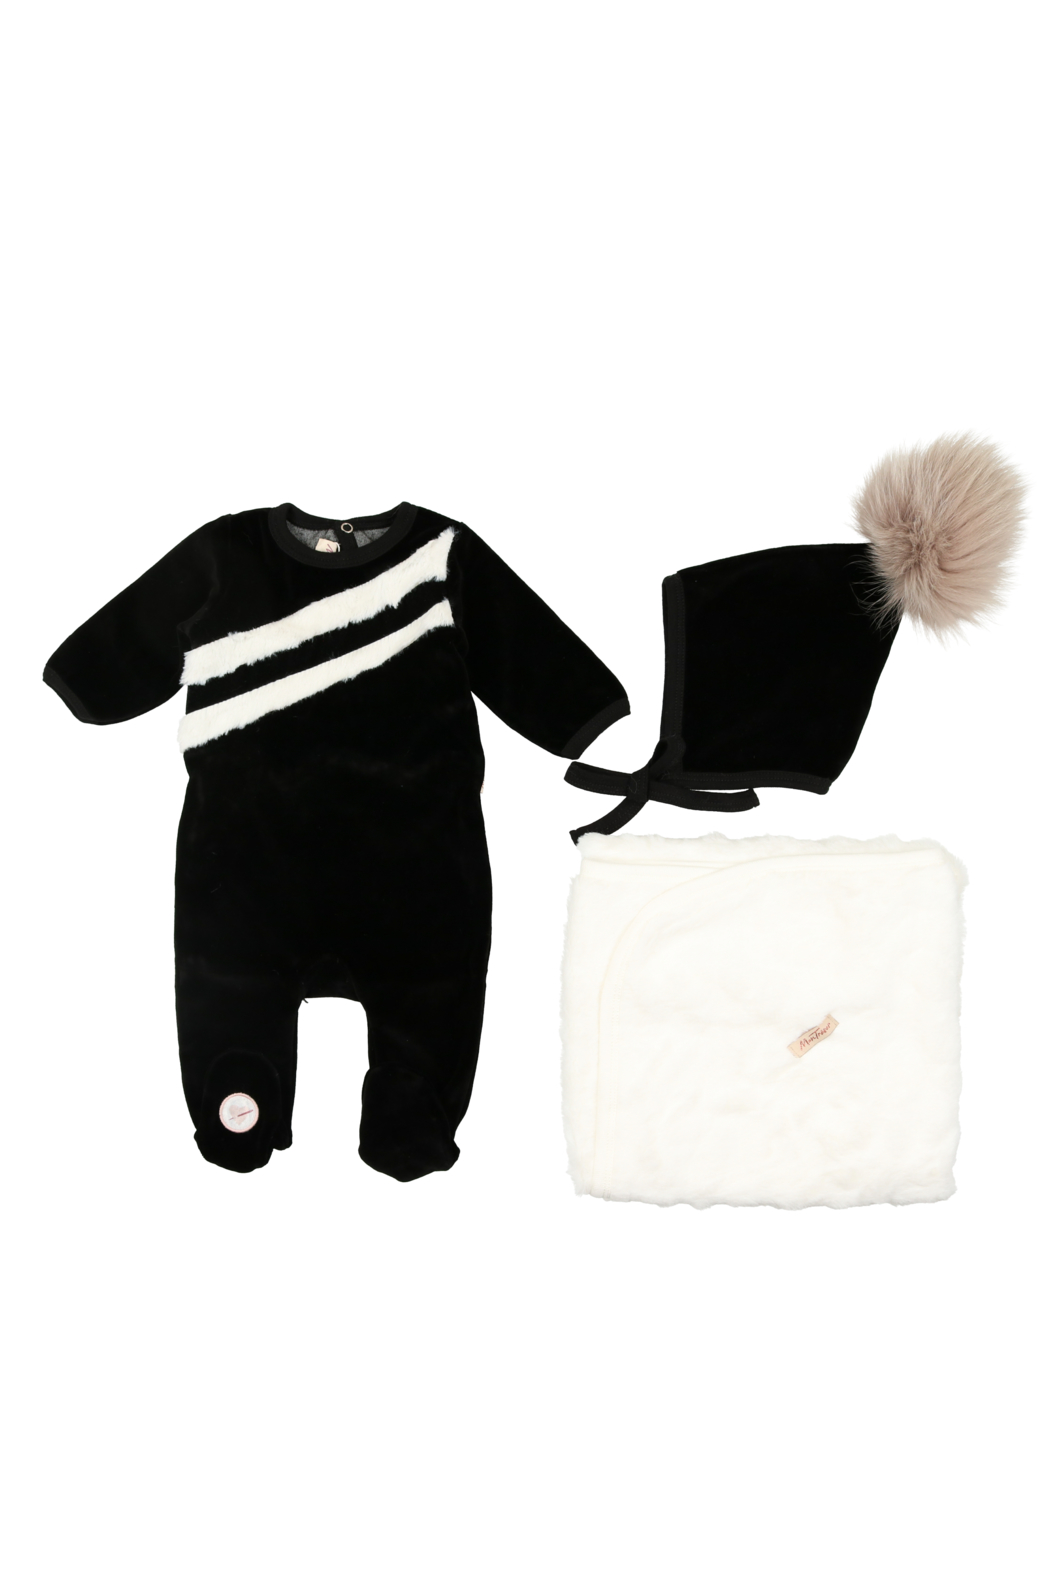 MON TRESOR  INFANT BABY LAYETTE BY BEBE - Main Image